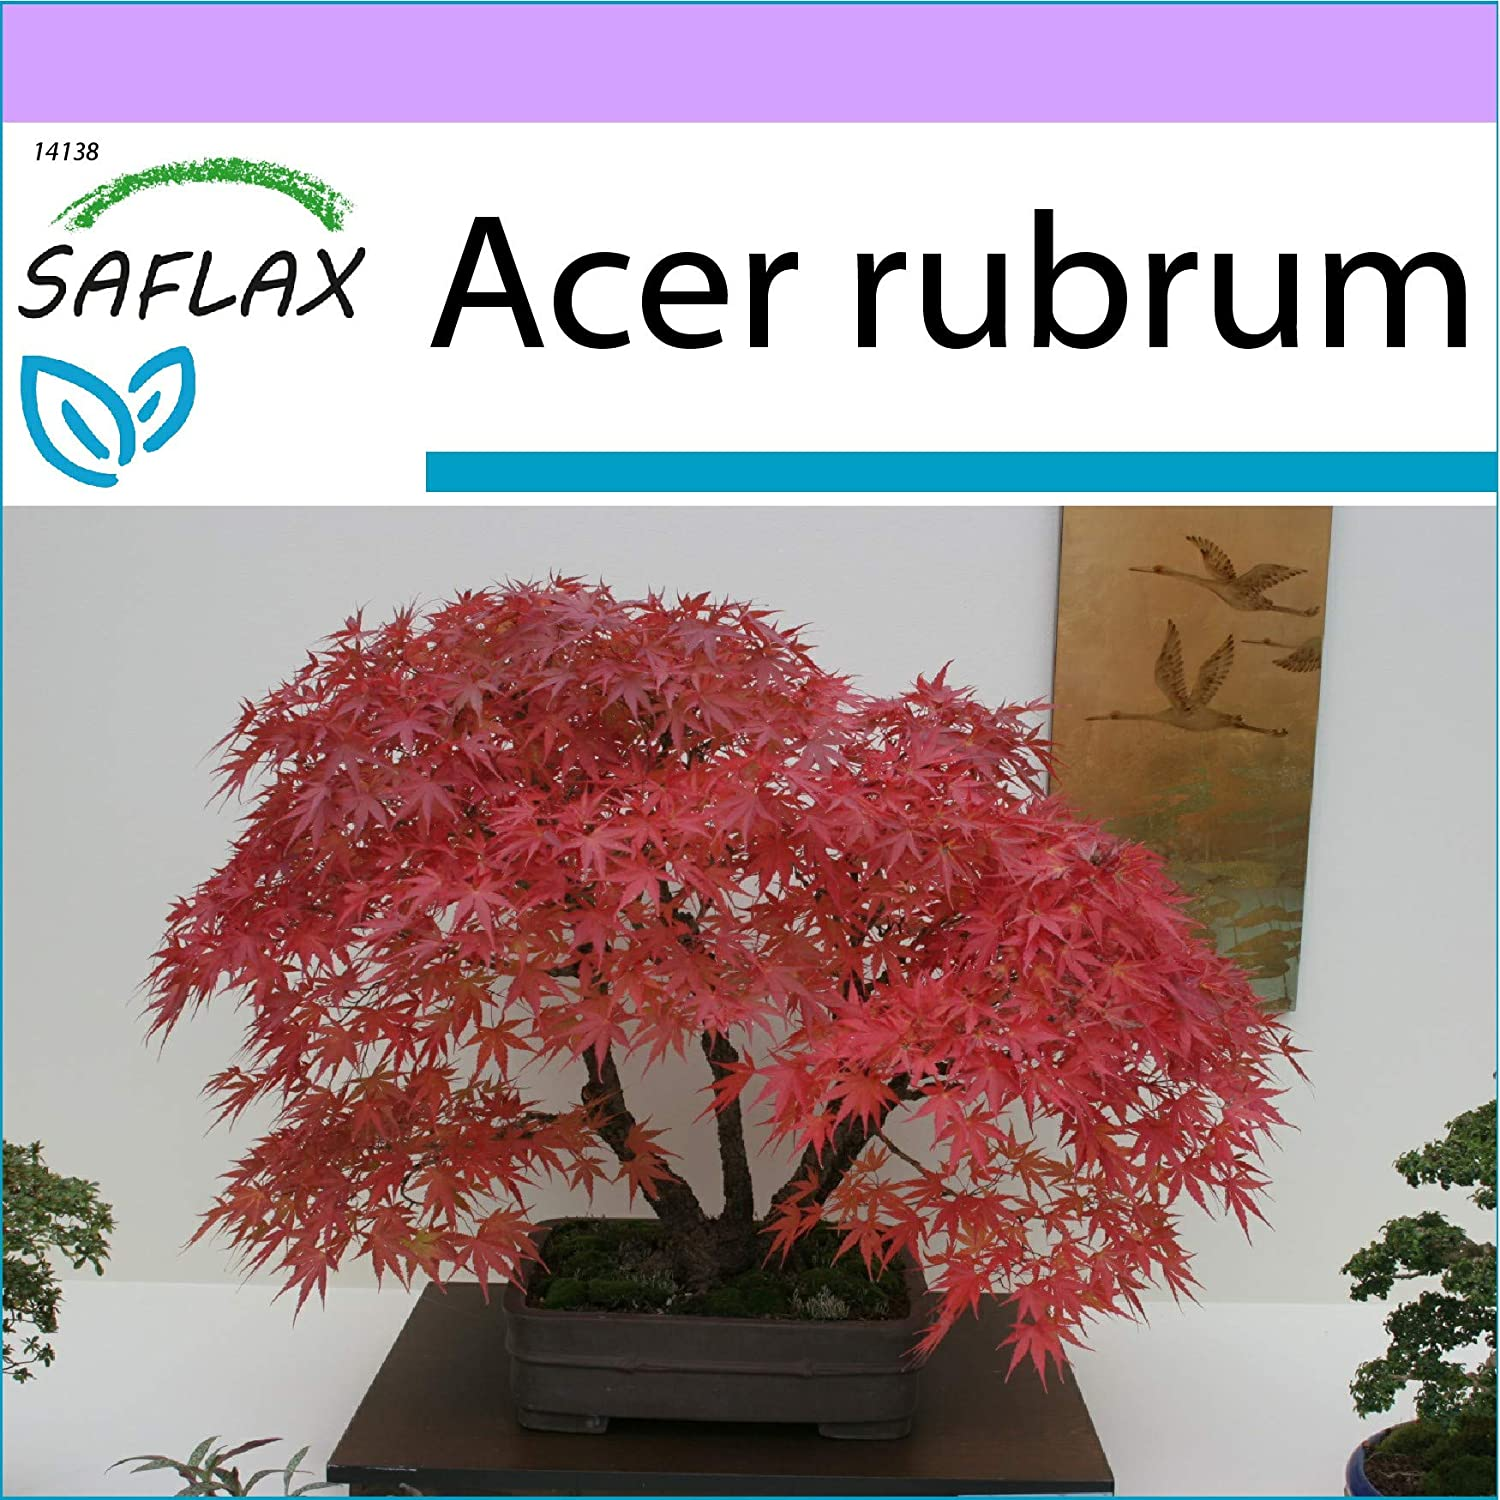 Saflax Bonsai Red Maple 20 Seeds Acer Rubrum Amazon Co Uk Garden Outdoors